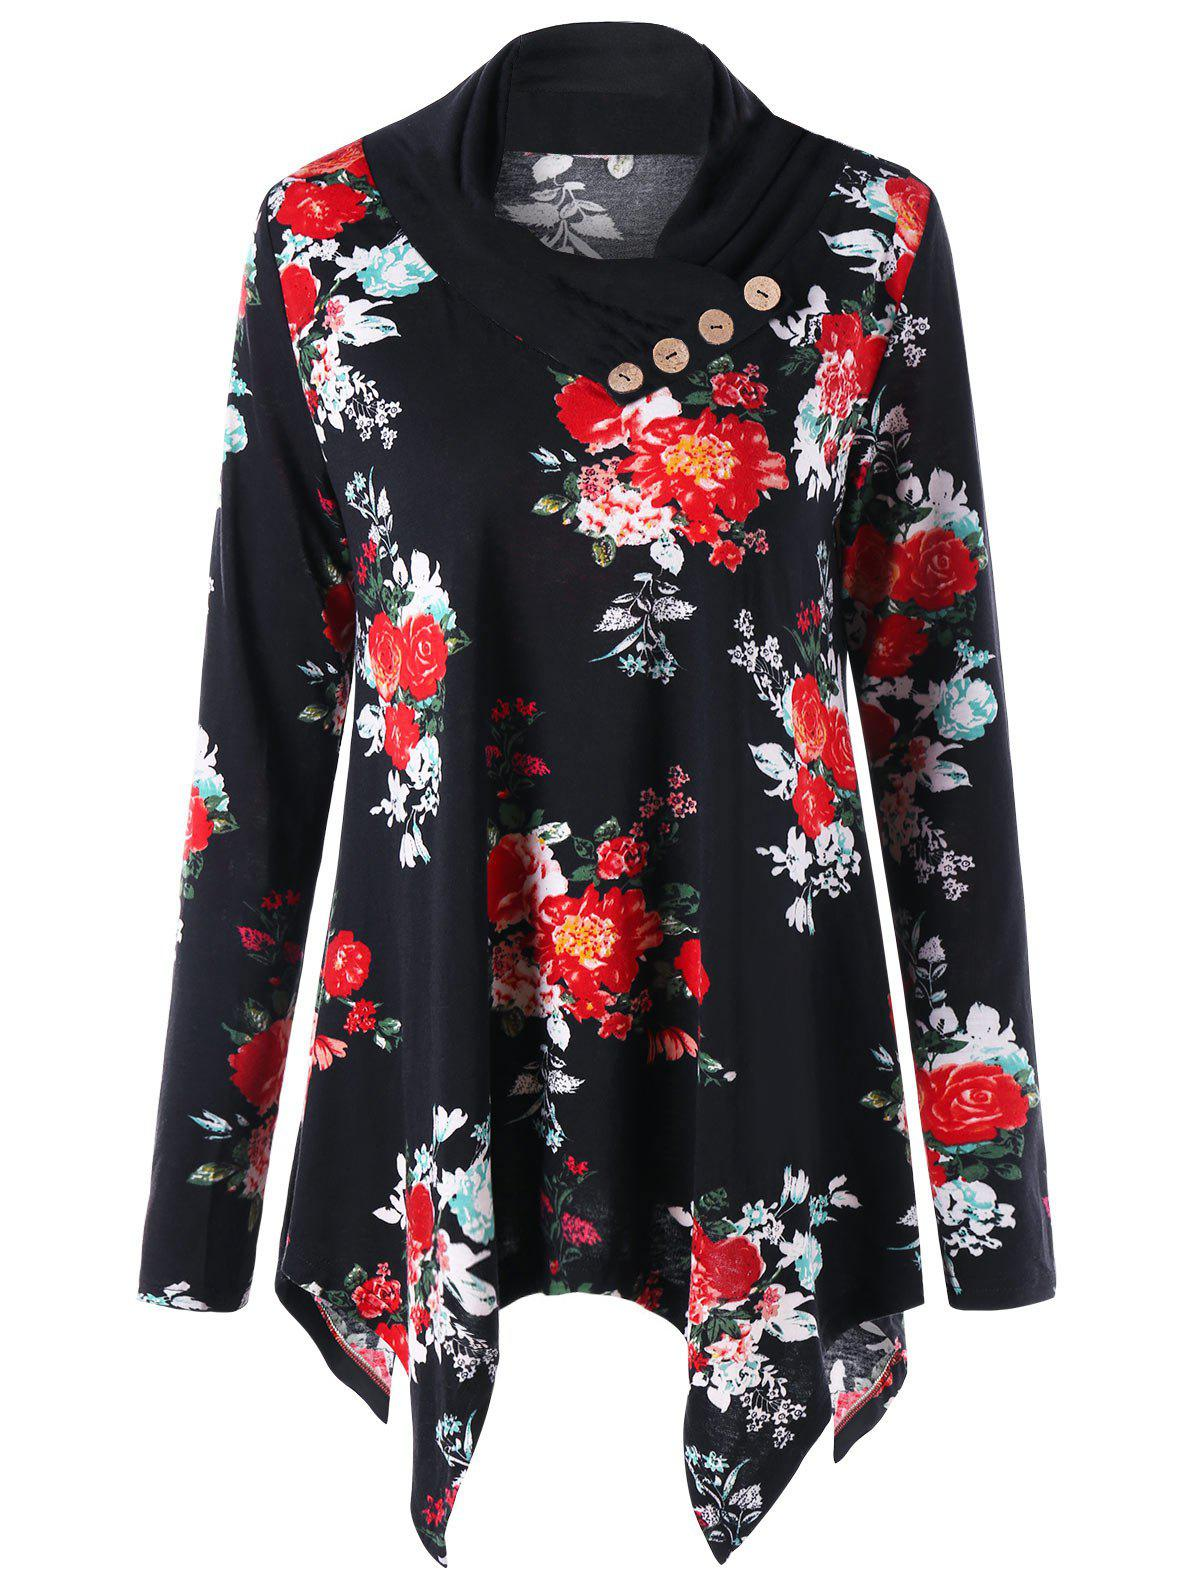 Floral Print Heap Collar Asymmetric Tunic TopWOMEN<br><br>Size: 2XL; Color: FLORAL; Material: Polyester,Spandex; Shirt Length: Regular; Sleeve Length: Full; Collar: Heaps Collar; Style: Casual; Pattern Type: Floral; Season: Fall,Spring; Weight: 0.3000kg; Package Contents: 1 x Top;